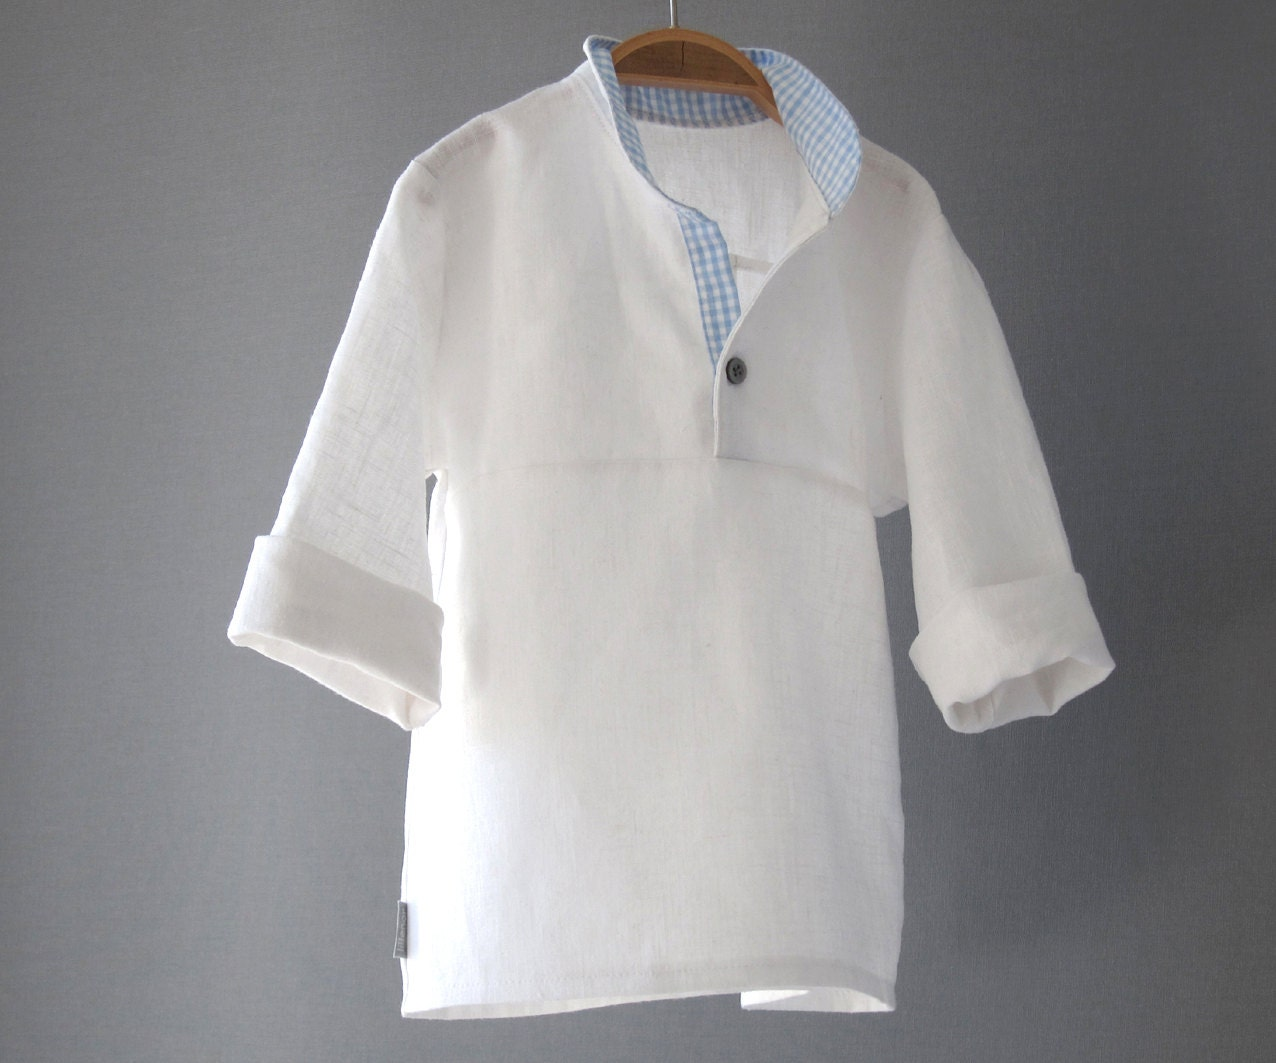 Find great deals on eBay for boys white linen shirt and boys white linen shirt age 9. Shop with confidence.